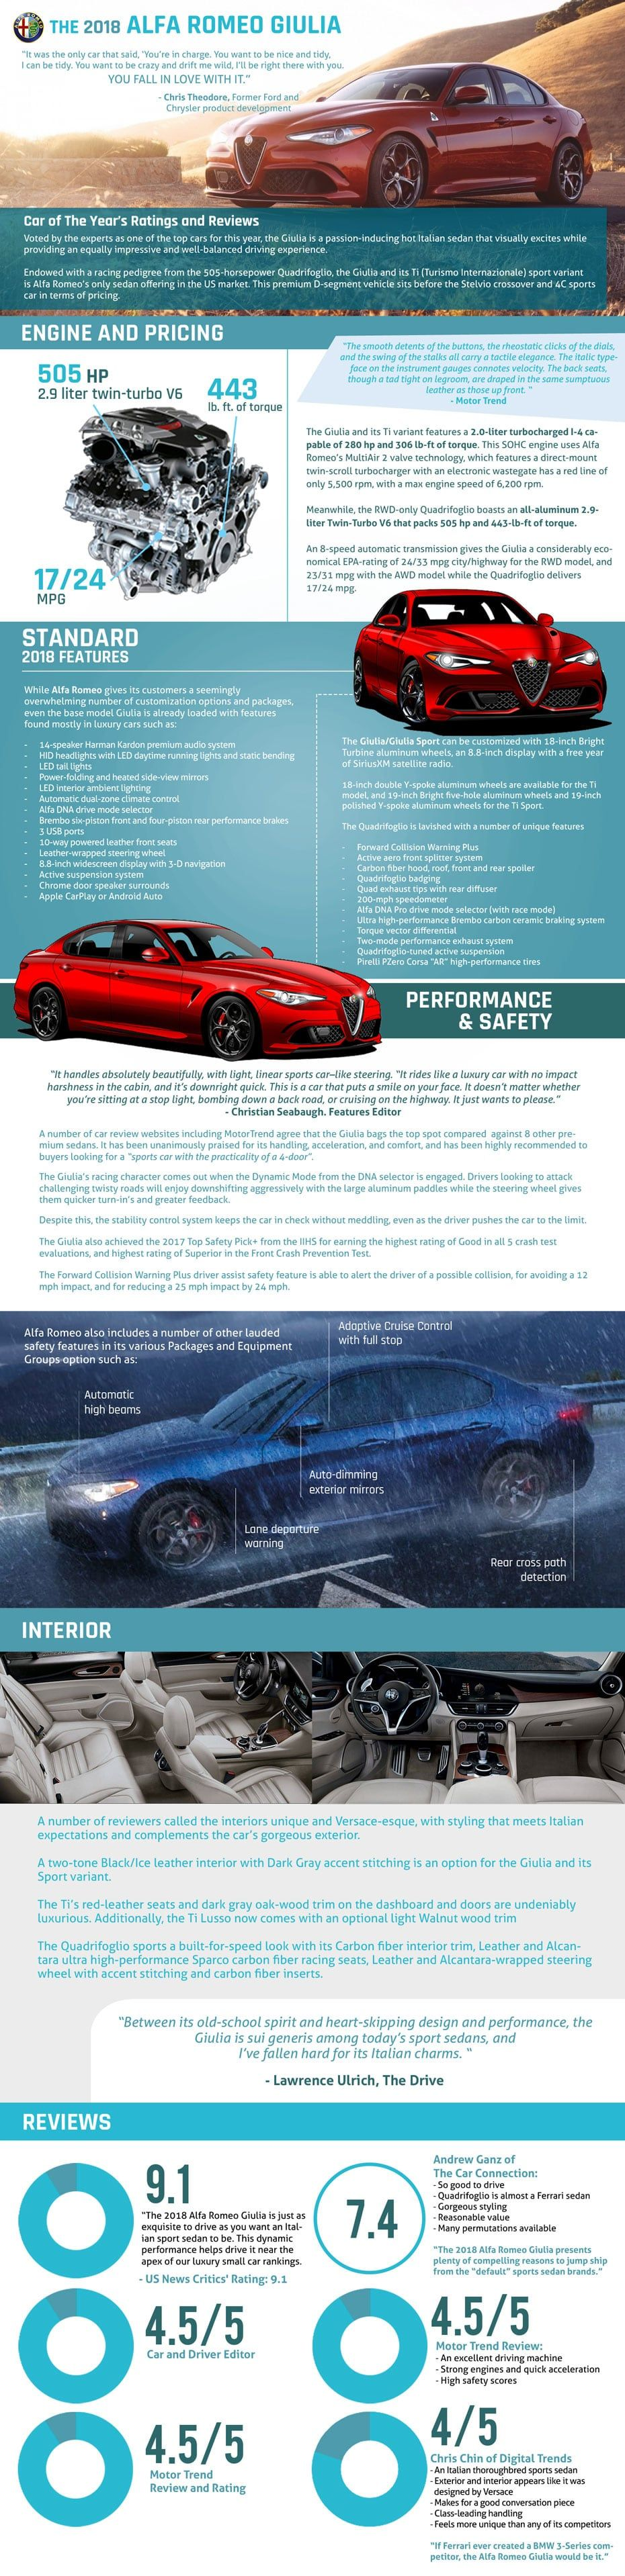 7 Things You Need To Know About The Alfa Romeo Giulia Alfa Roméo Giulia Alfa Roméo Roméo